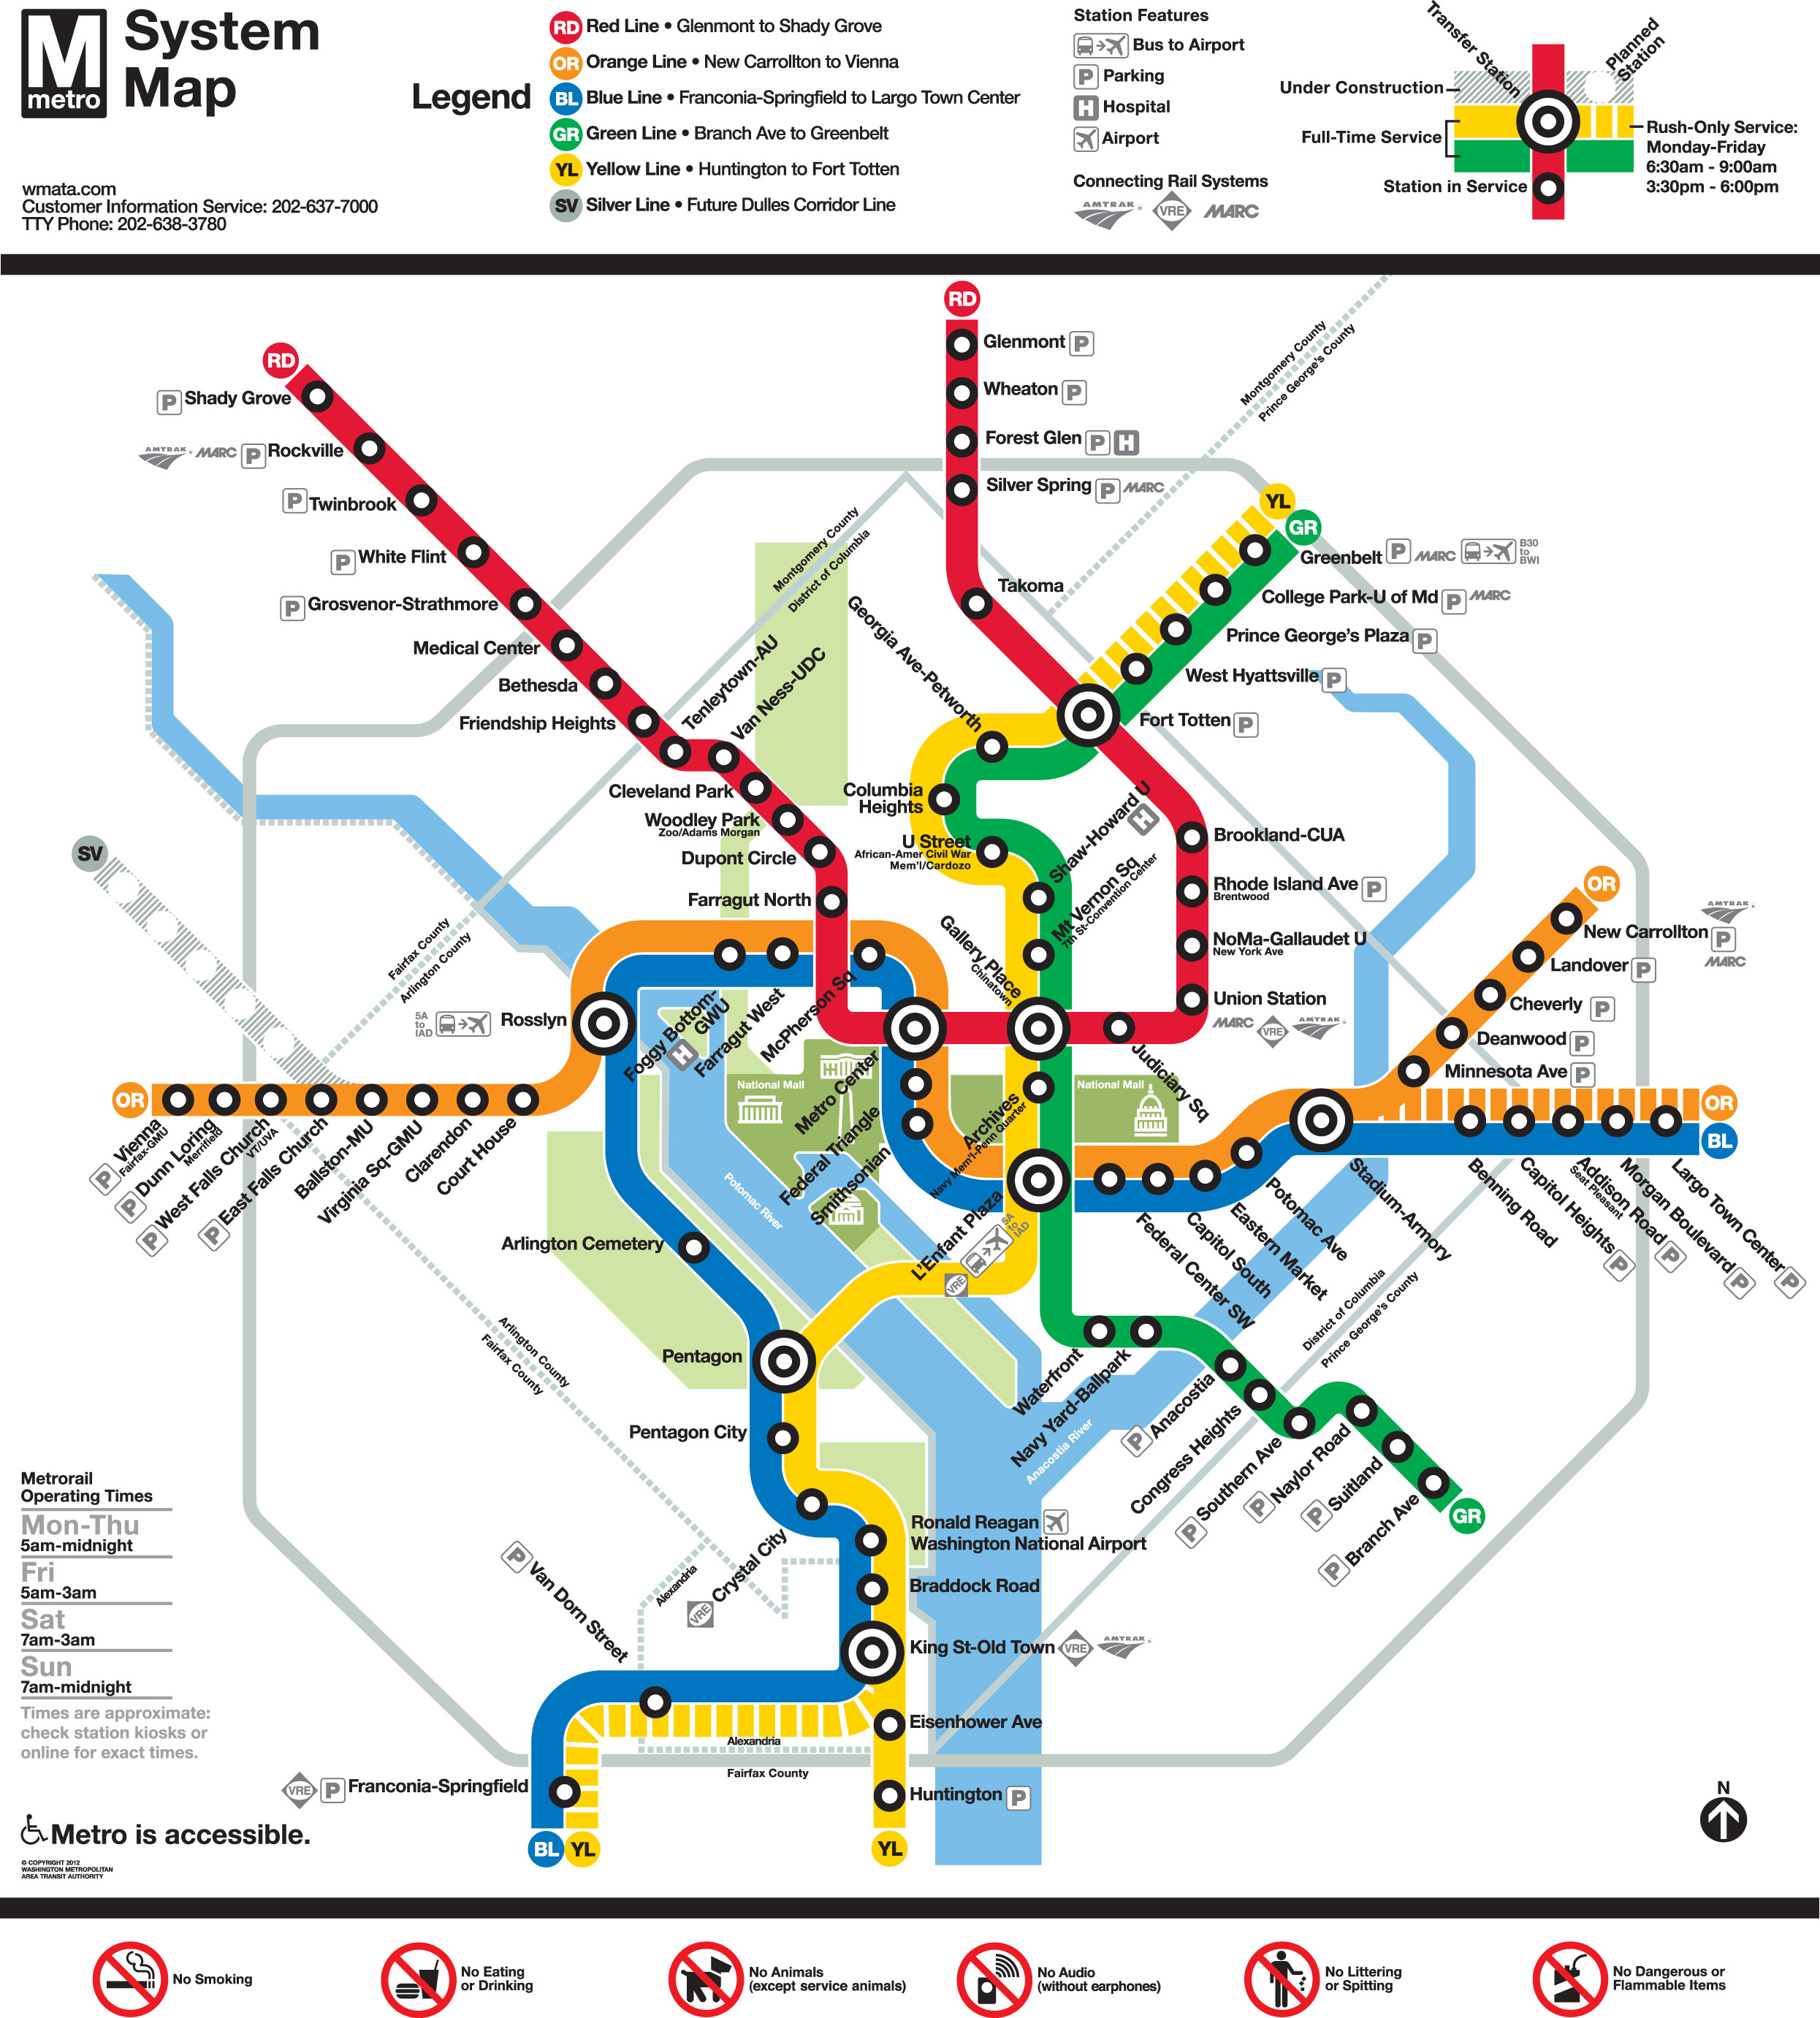 Subways Maps.Building A Better Subway Map National Geographic Education Blog